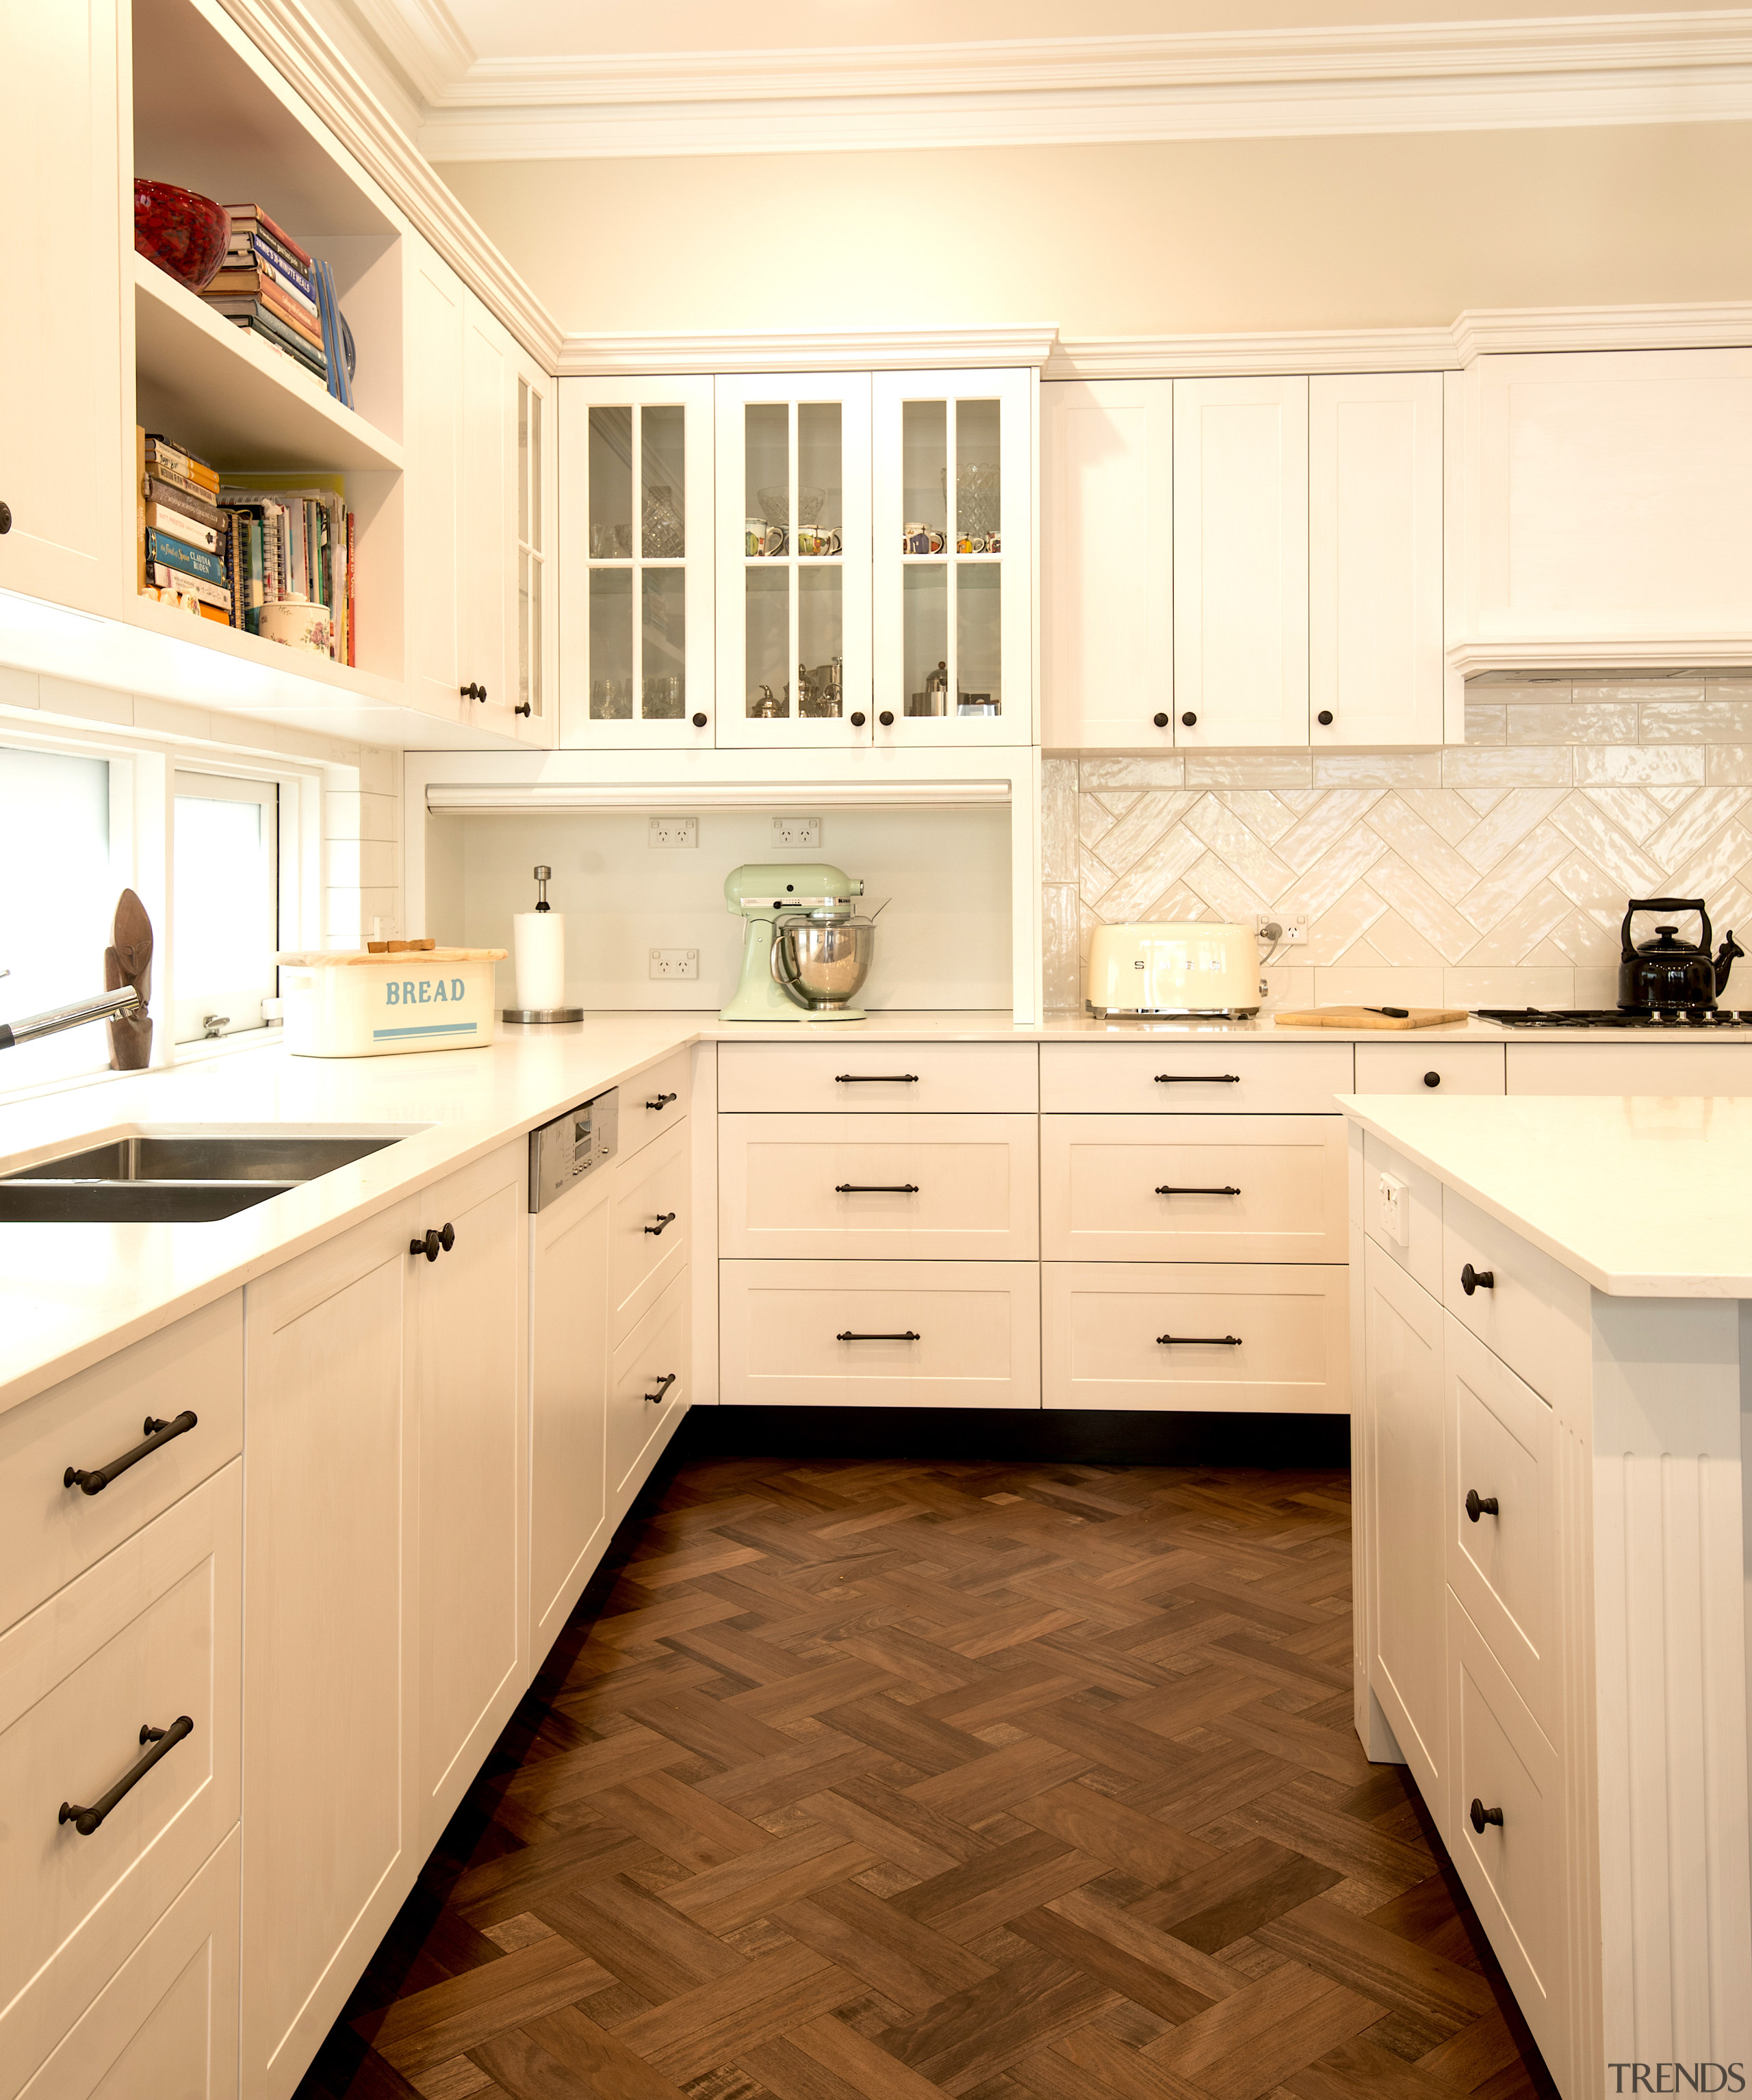 Glass-fronted cabinets break up this kitchen's wider use architecture, building, cabinetry, countertop, cupboard, drawer, floor, flooring, furniture, home, house, interior design, kitchen, material property, property, room, sink, tile, orange, yellow